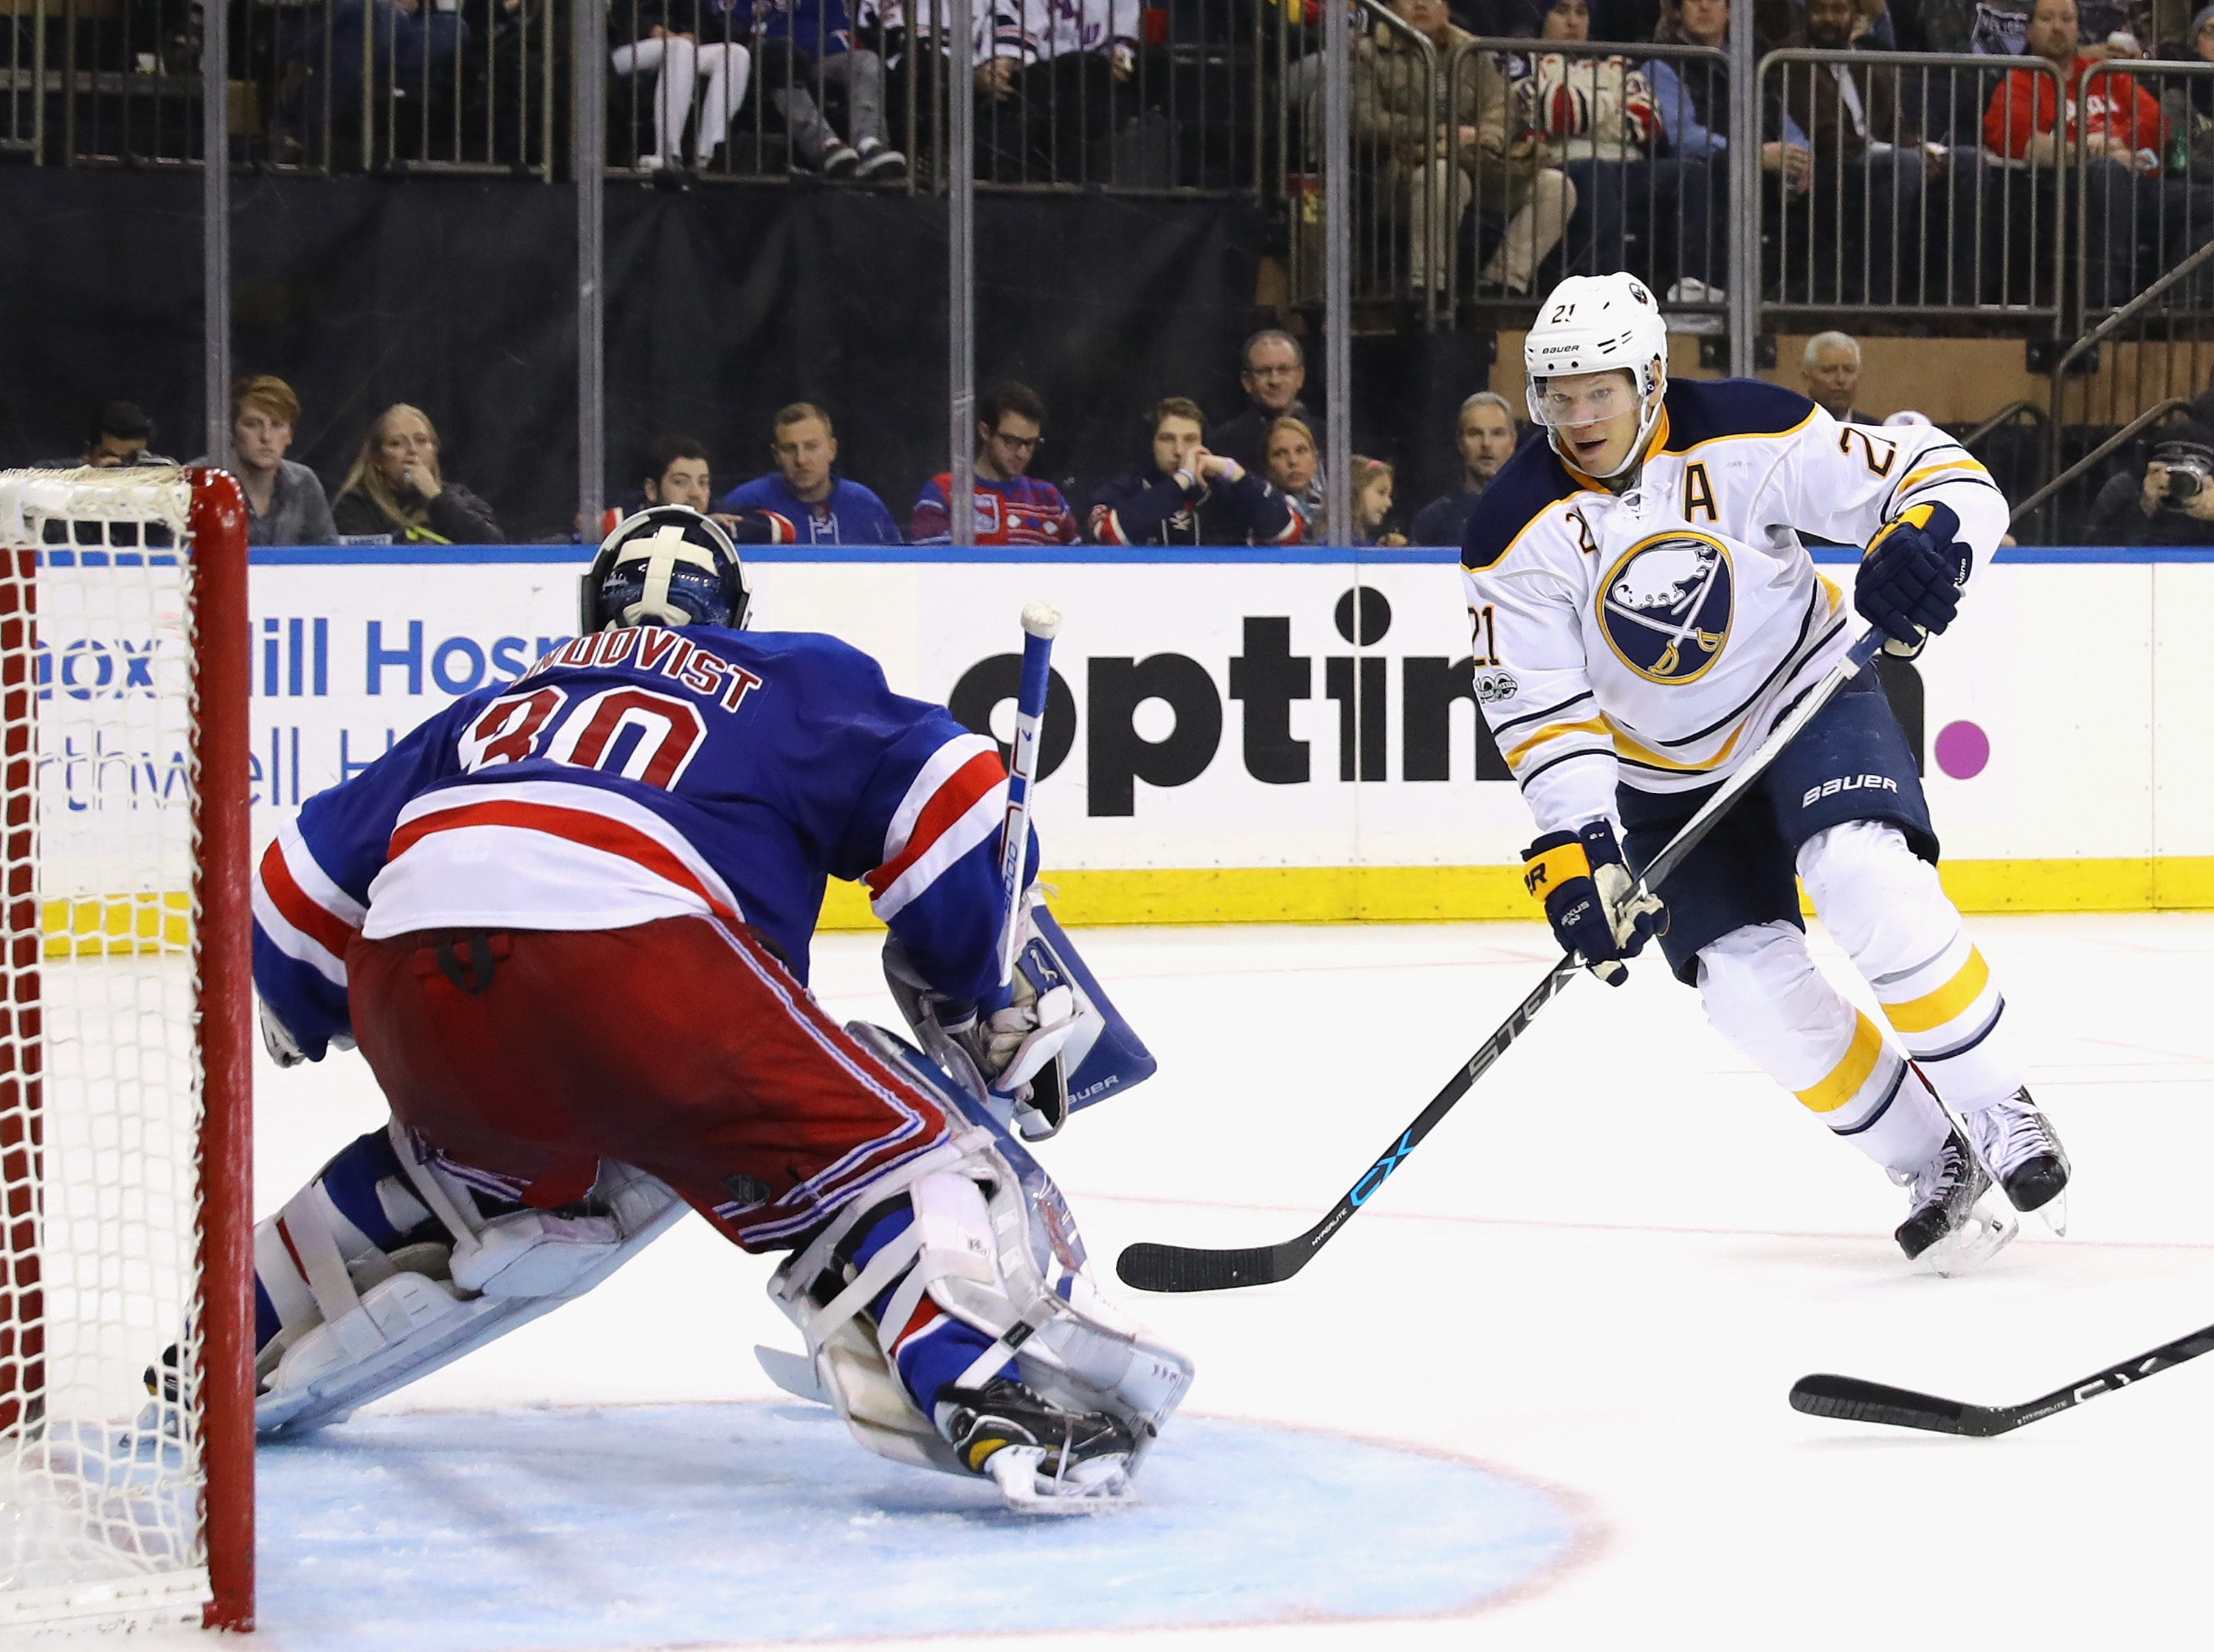 Kyle Okposo and the Sabres are 2-0 this season against Henrik Lundqvist and the Rangers. (Getty Images)